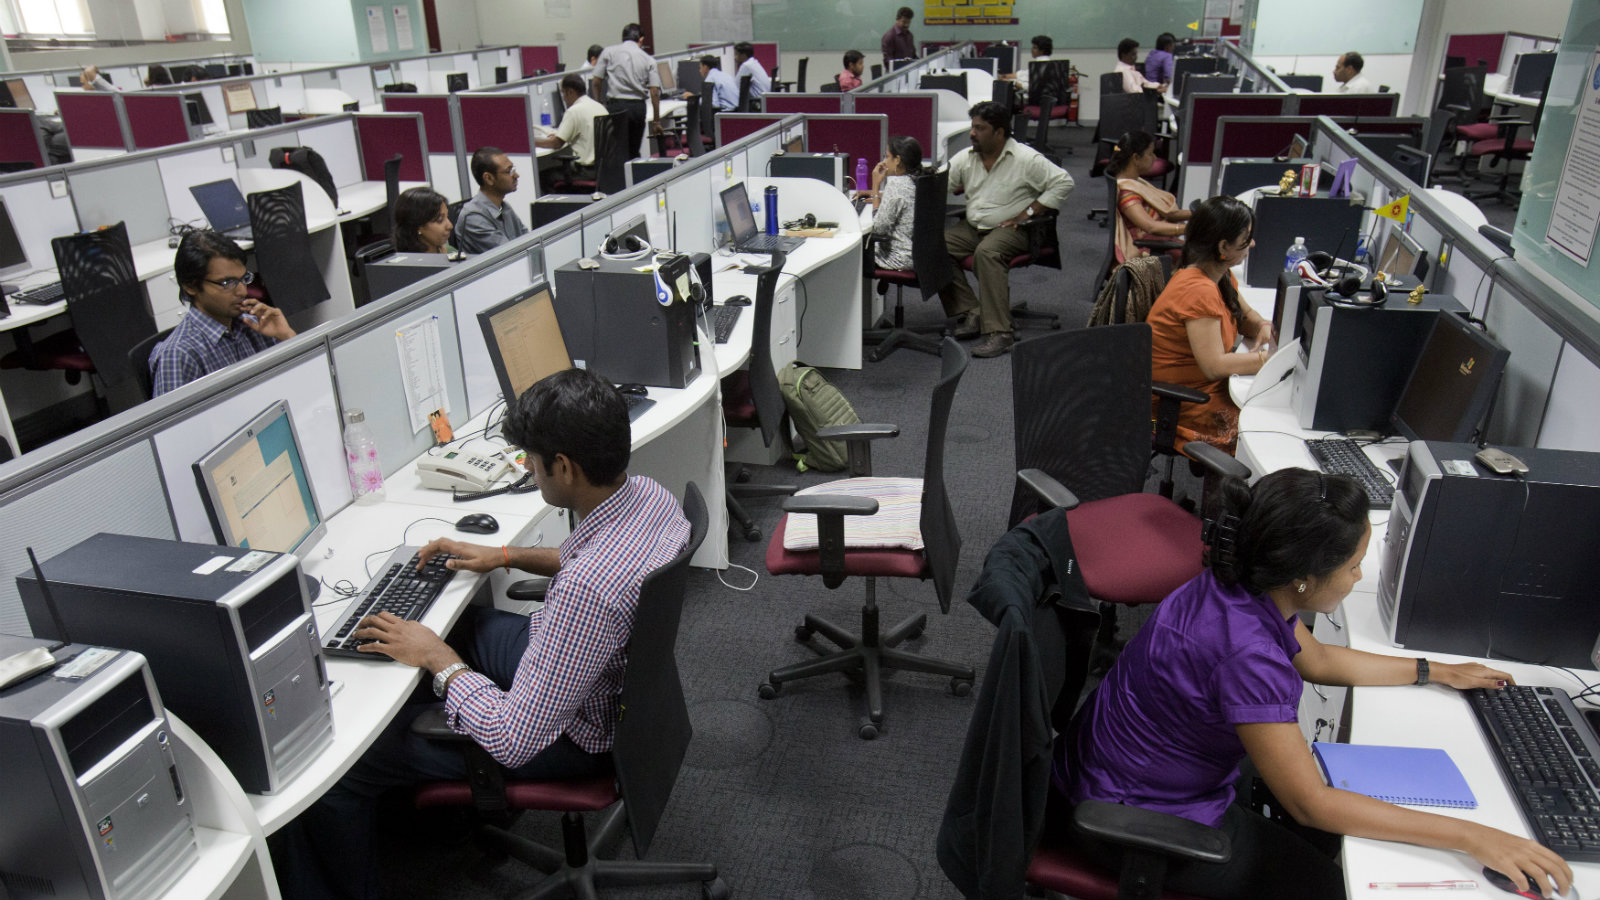 Workers are seen at their workstations on the floor of an outsourcing centre in Bangalore, February 29, 2012. India's IT industry, with Bangalore firms forming the largest component, is now worth an annual $100 billion and growing 14 percent per year, one of the few bright spots in an economy blighted by policy stagnation and political instability. Picture taken on February 29, 2012.